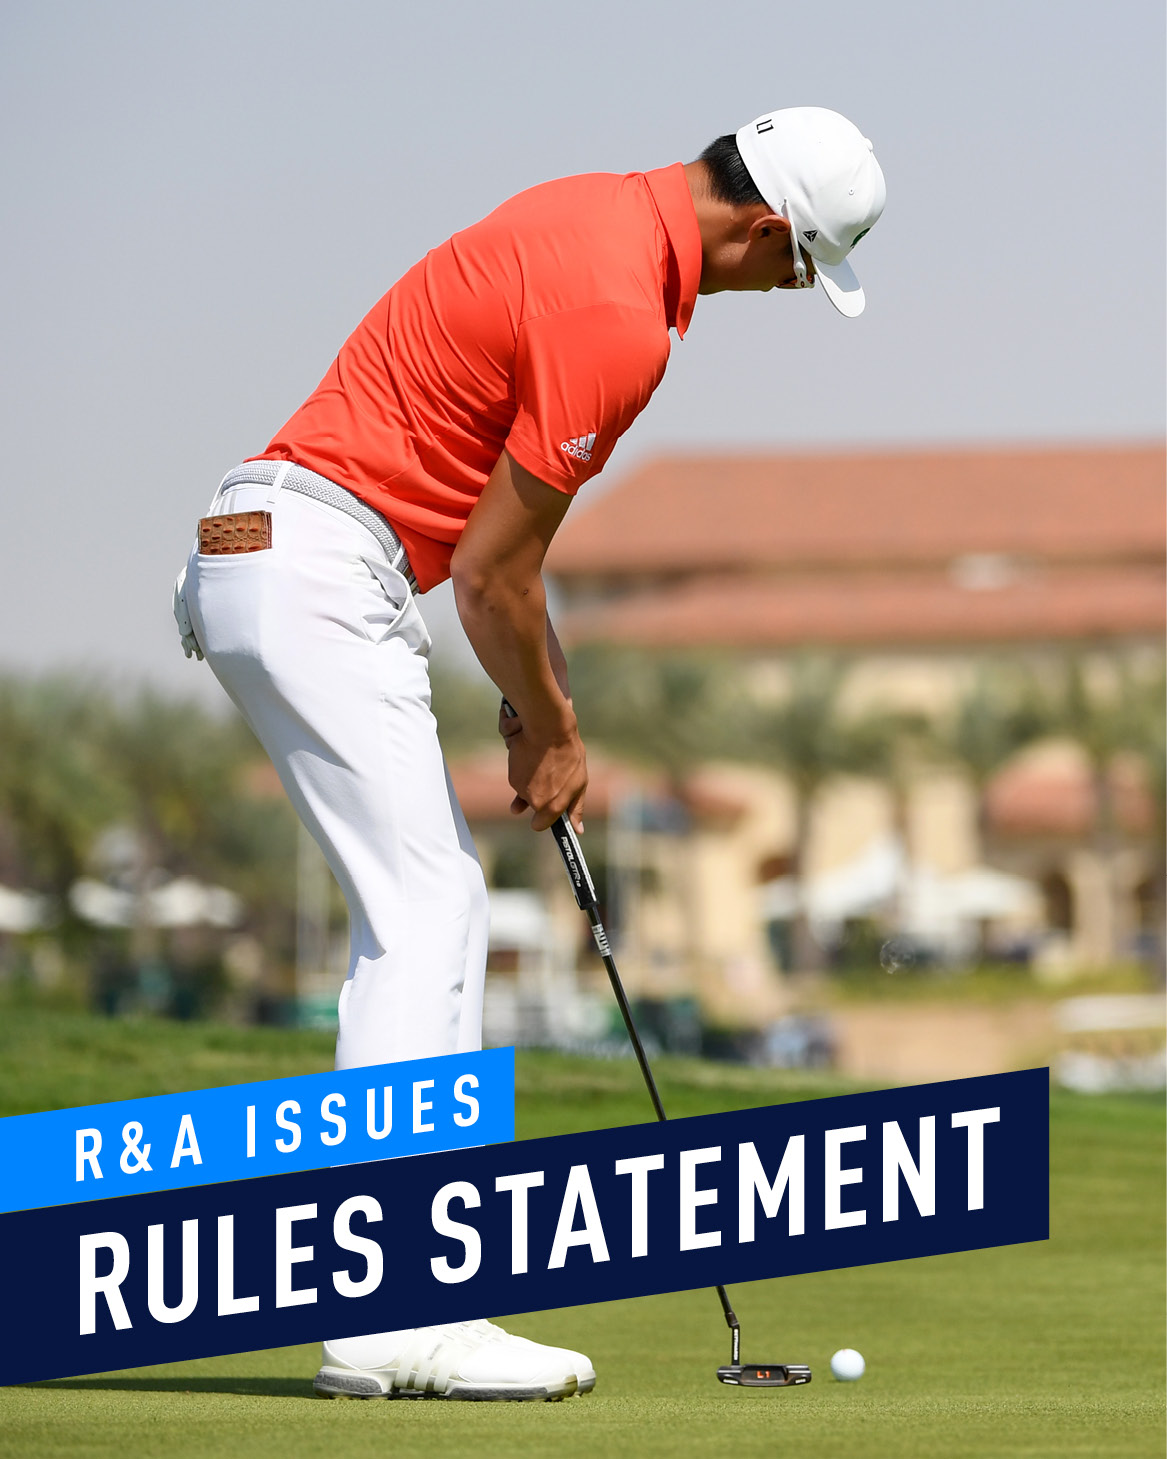 Rules statement